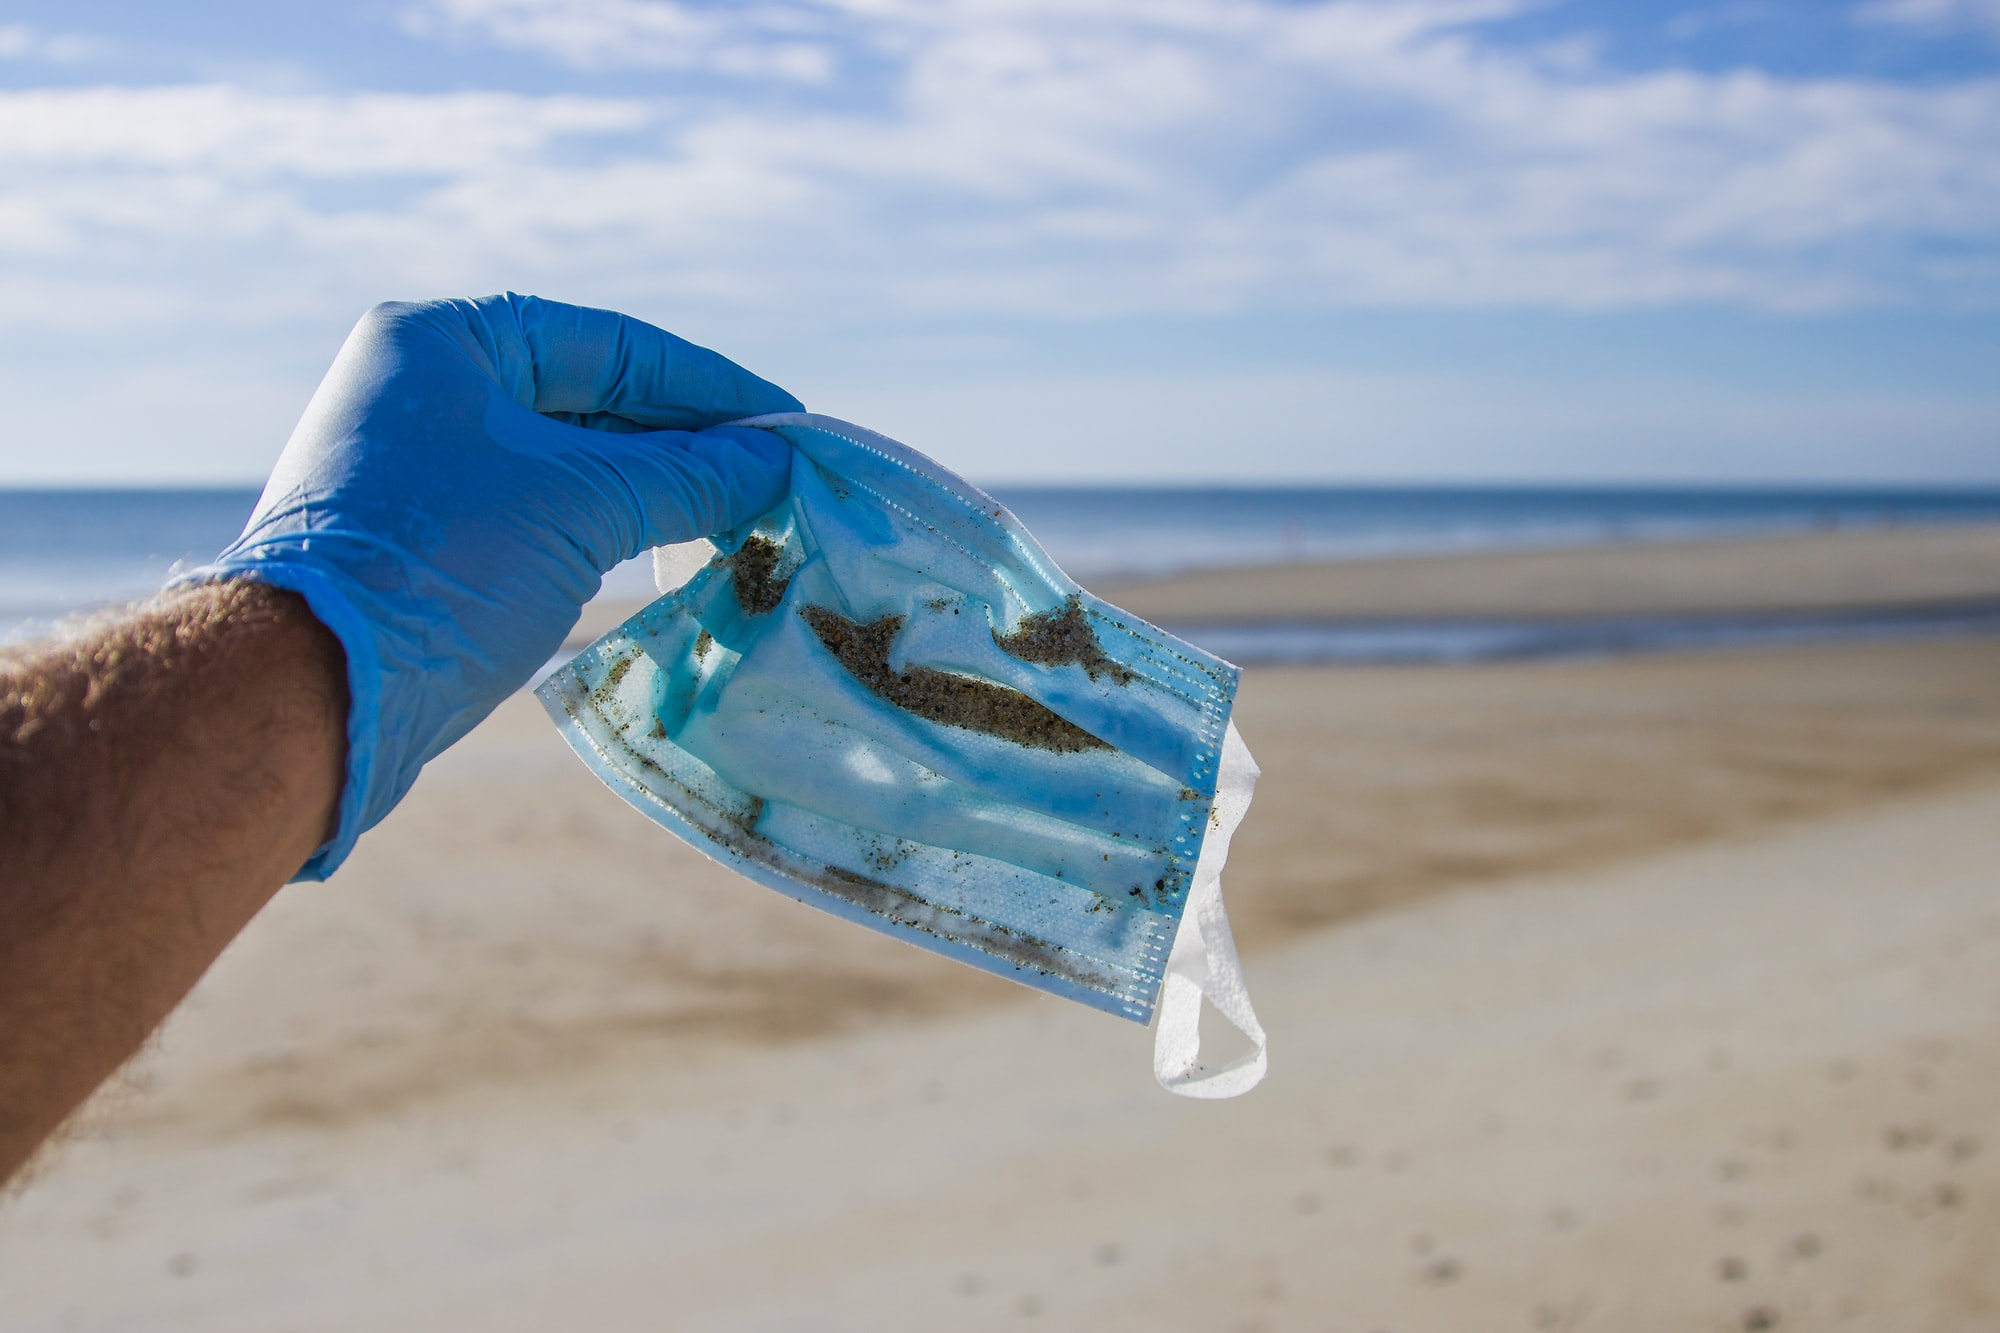 A face mask found during a beach cleanup in Hampton Beach, New Hampshire. During the summer, seasonal beaches are overrun with visitors, and we find overwhelming amounts of single use plastics littered across the sand. We've been finding more and more of this personal protective equipment (PPE) since Coronavirus emerged. You can help by leaving the beach cleaner than you found it, and making small changes to your everyday life. Respect the ocean. Follow on Instagram @wildlife_by_yuri, and find more free plastic pollution photos at: https://www.wildlifebyyuri.com/free-ocean-photography